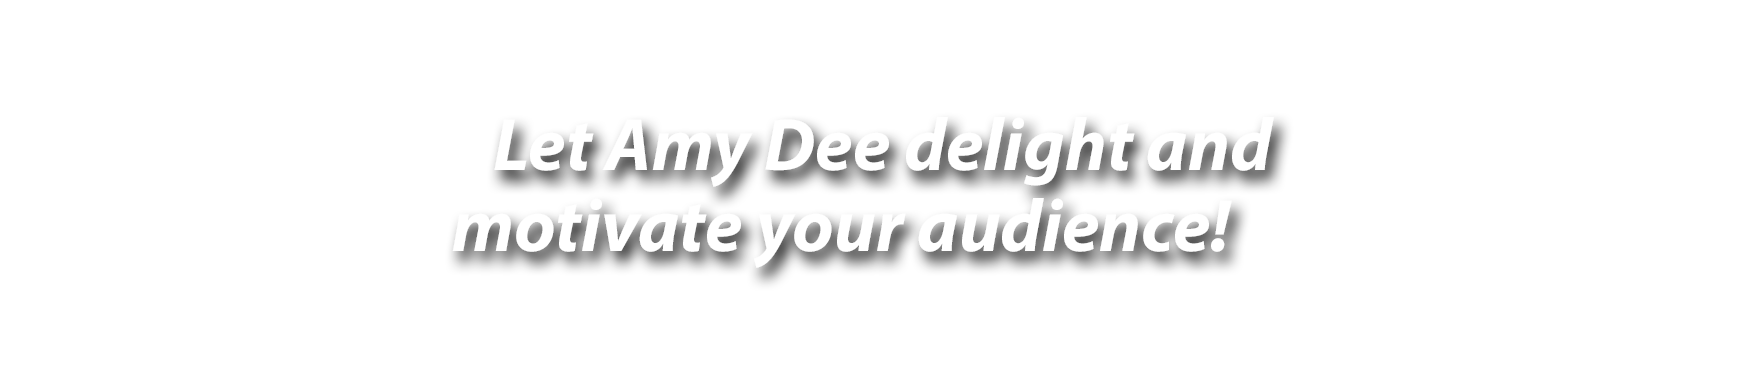 Let Amy Dee delight and motivate your audience!